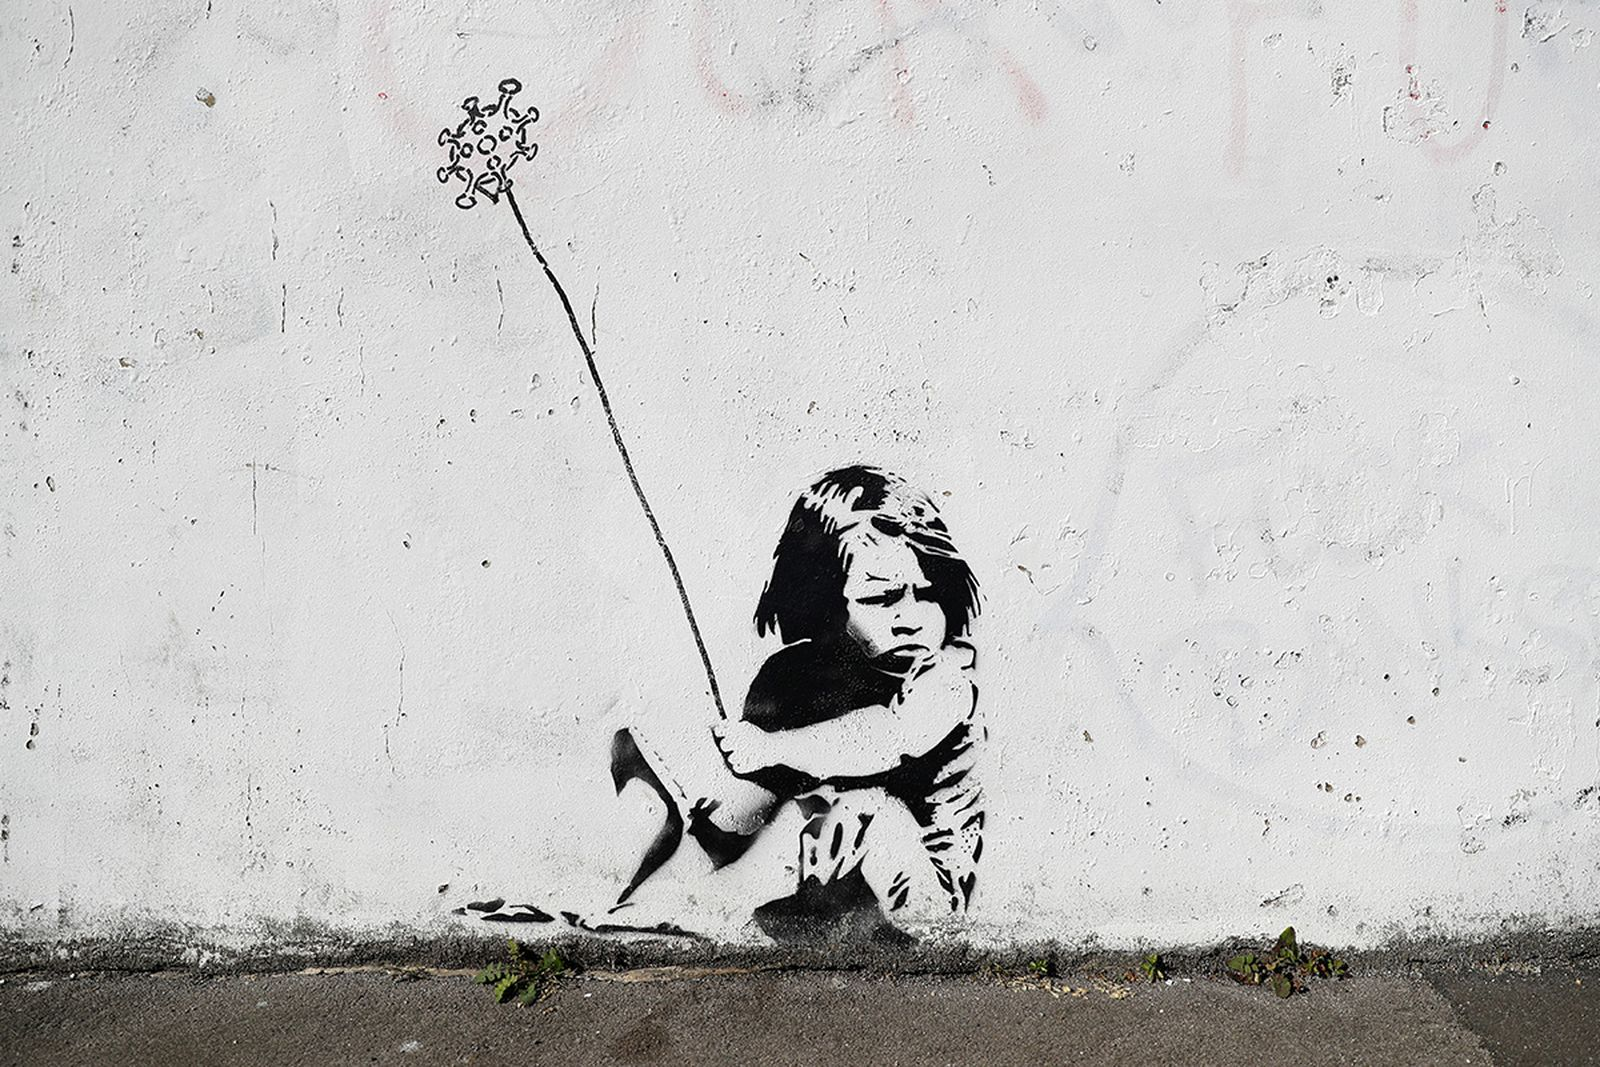 banksy-game-changer-charity-02